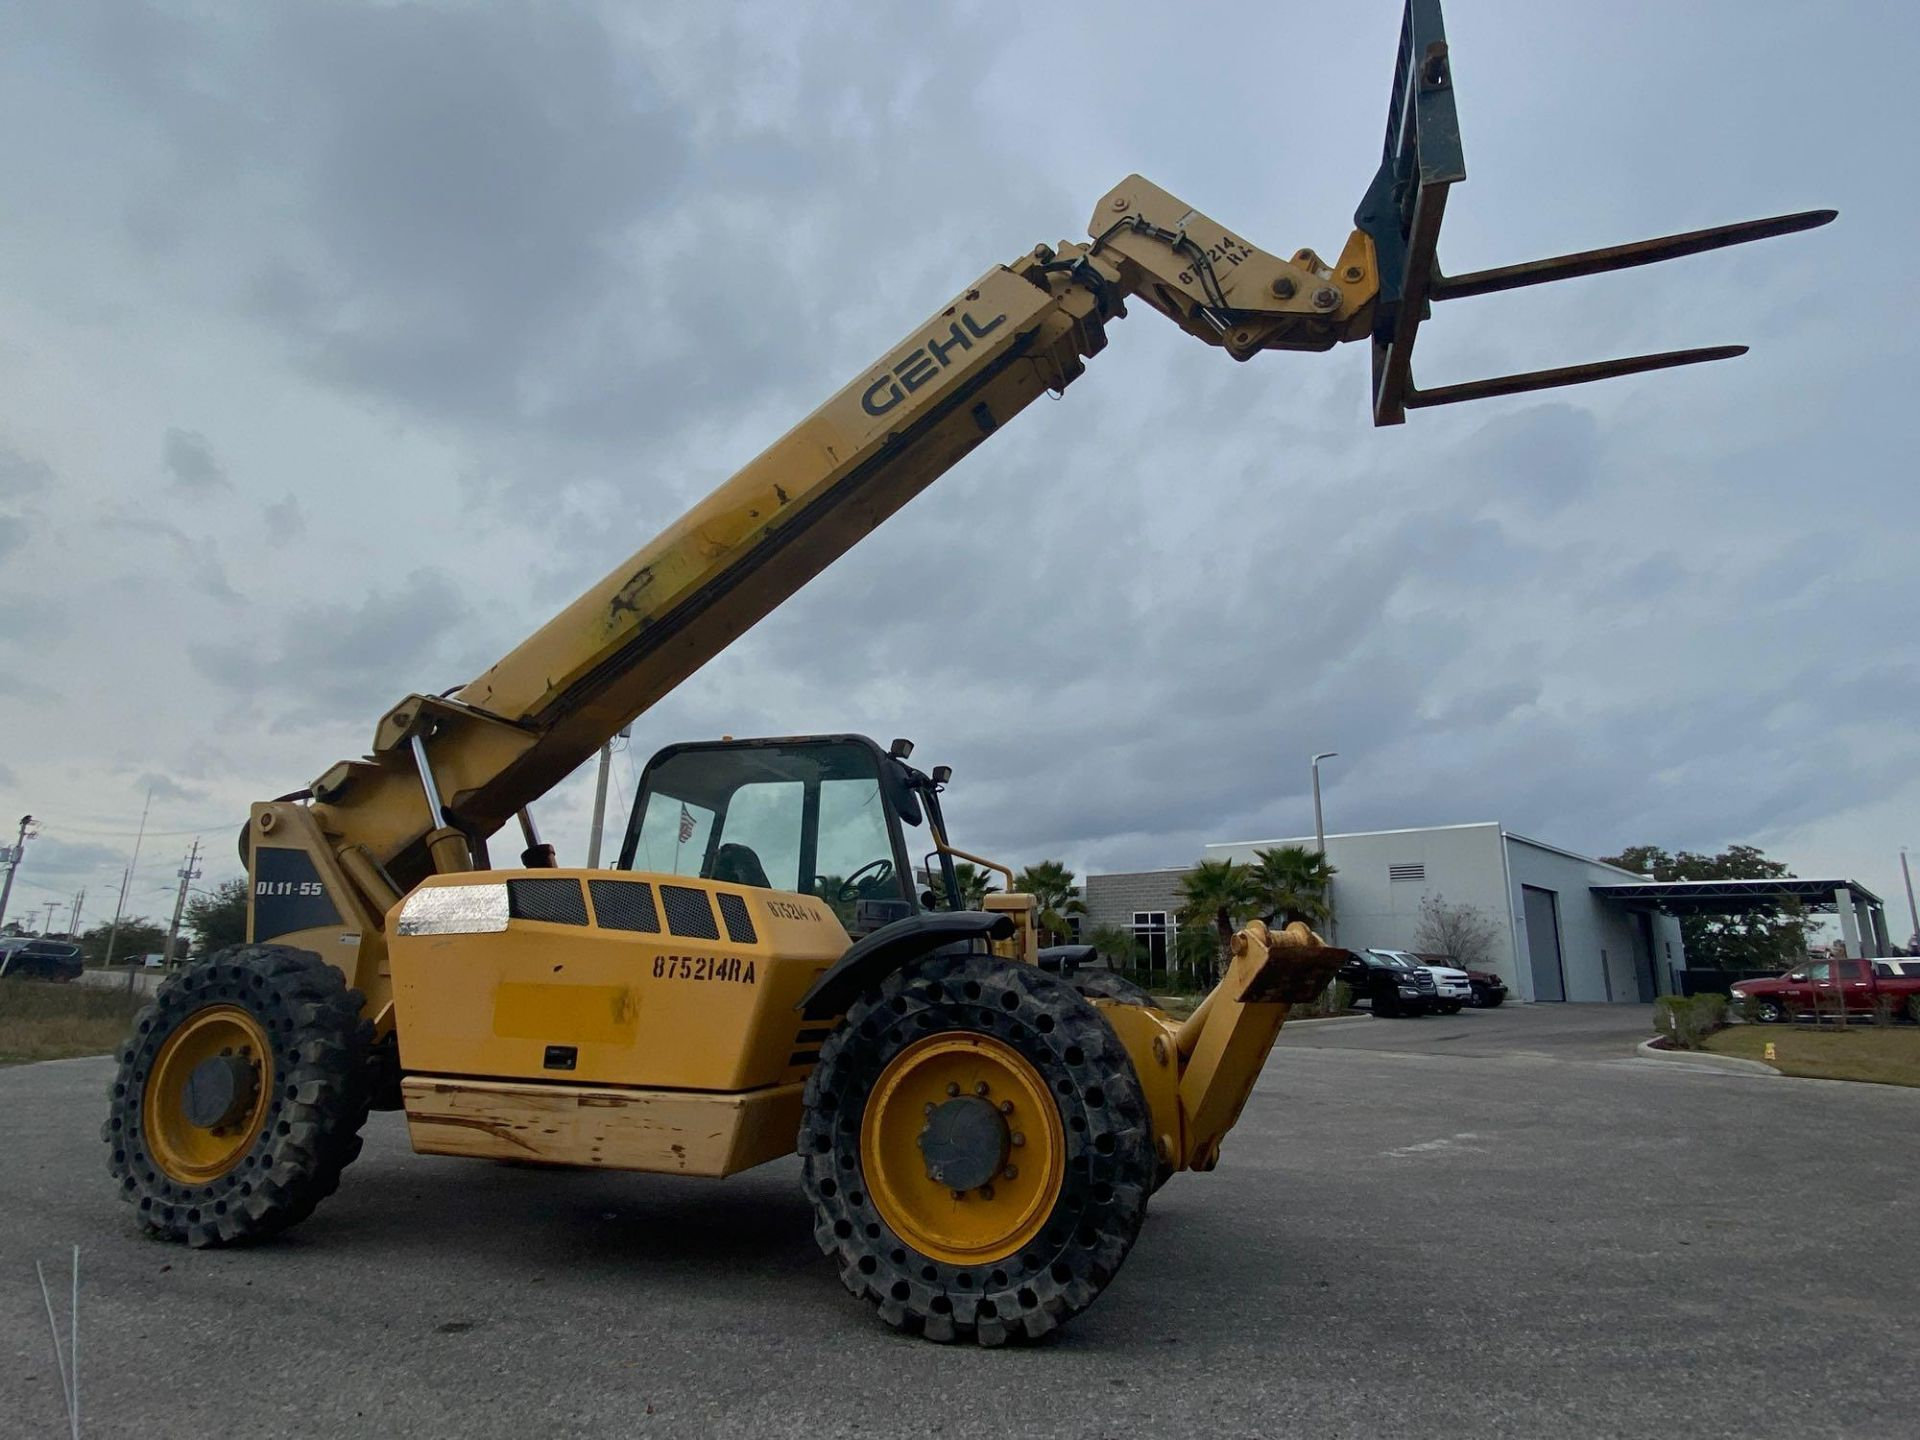 Lot 27 - 2011 GEHL DL11-55 TELESCOPIC FORKLIFT, 11,000 LB CAPACITY, 55' REACH, DIESEL, OUTRIGGERS